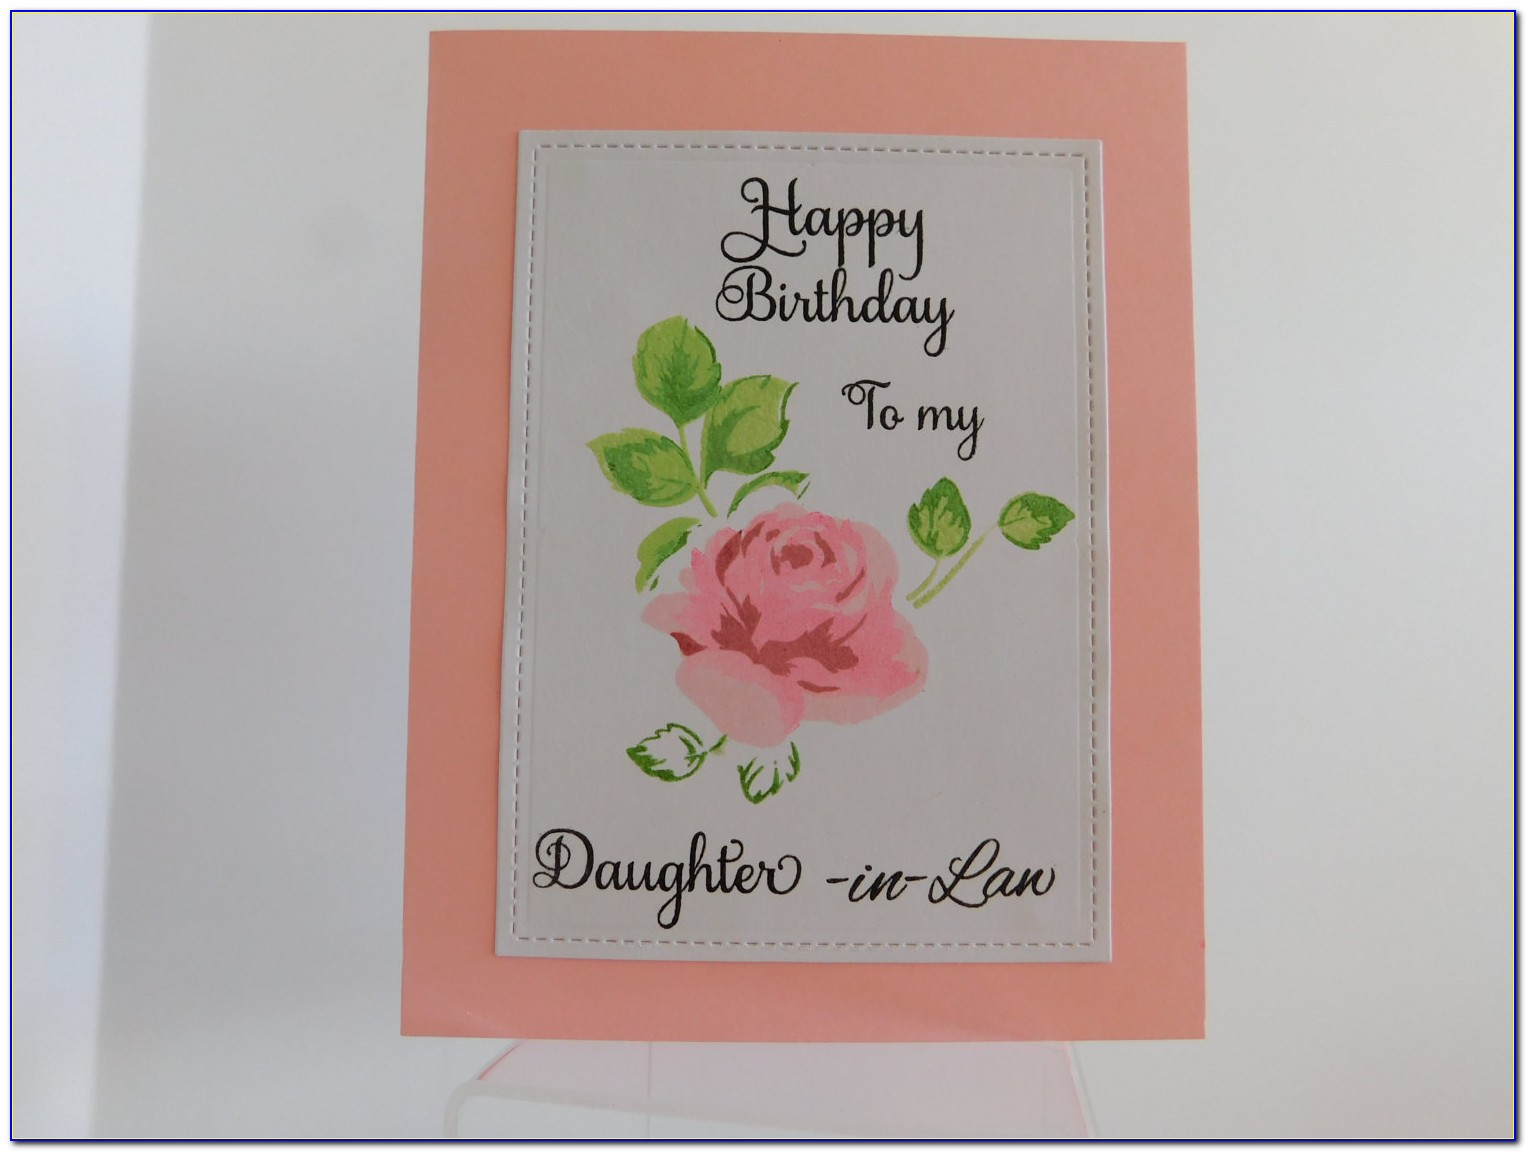 Birthday Invitation Card For My Daughter